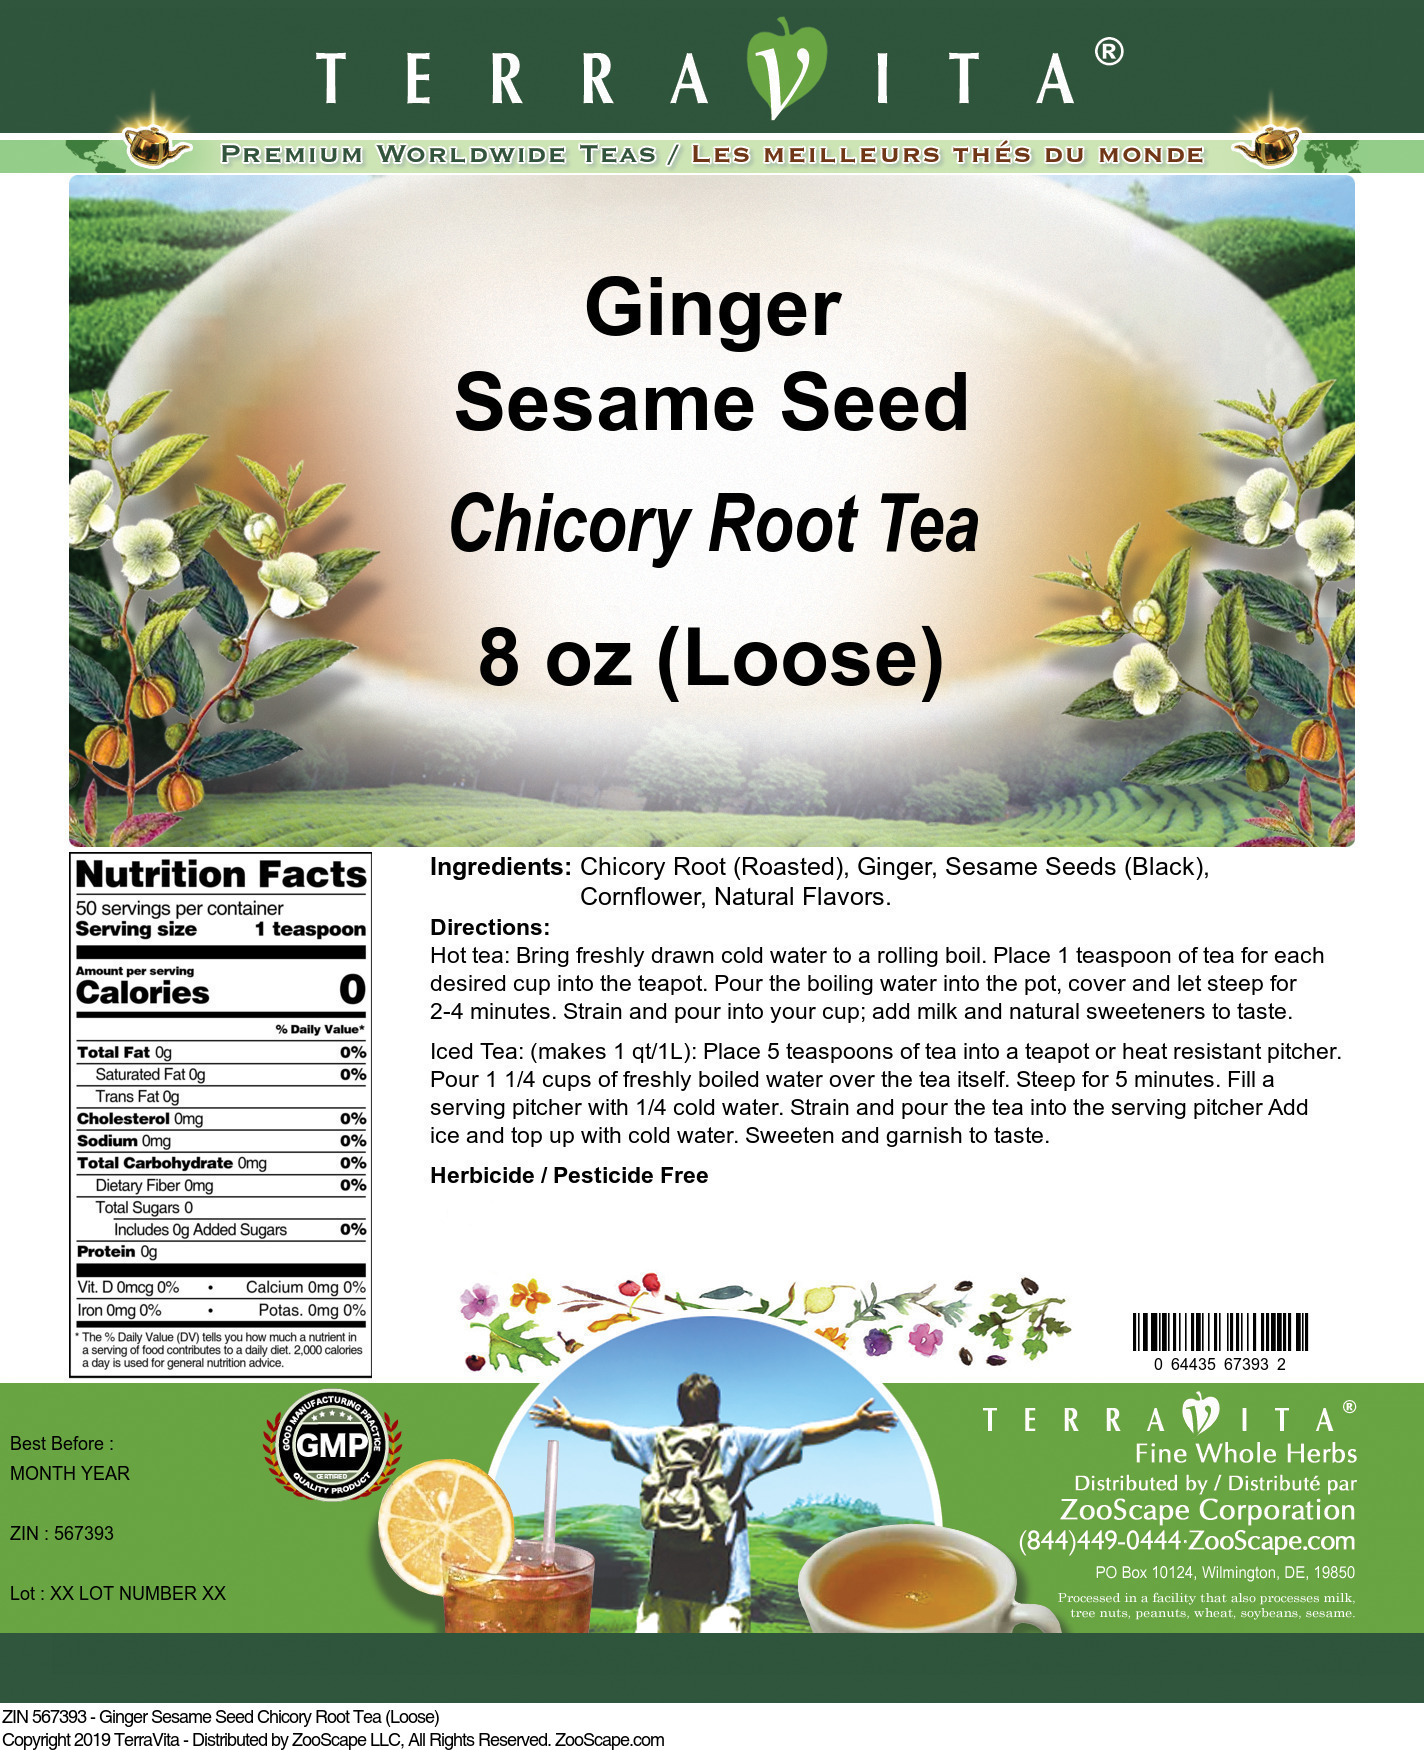 Ginger Sesame Seed Chicory Root